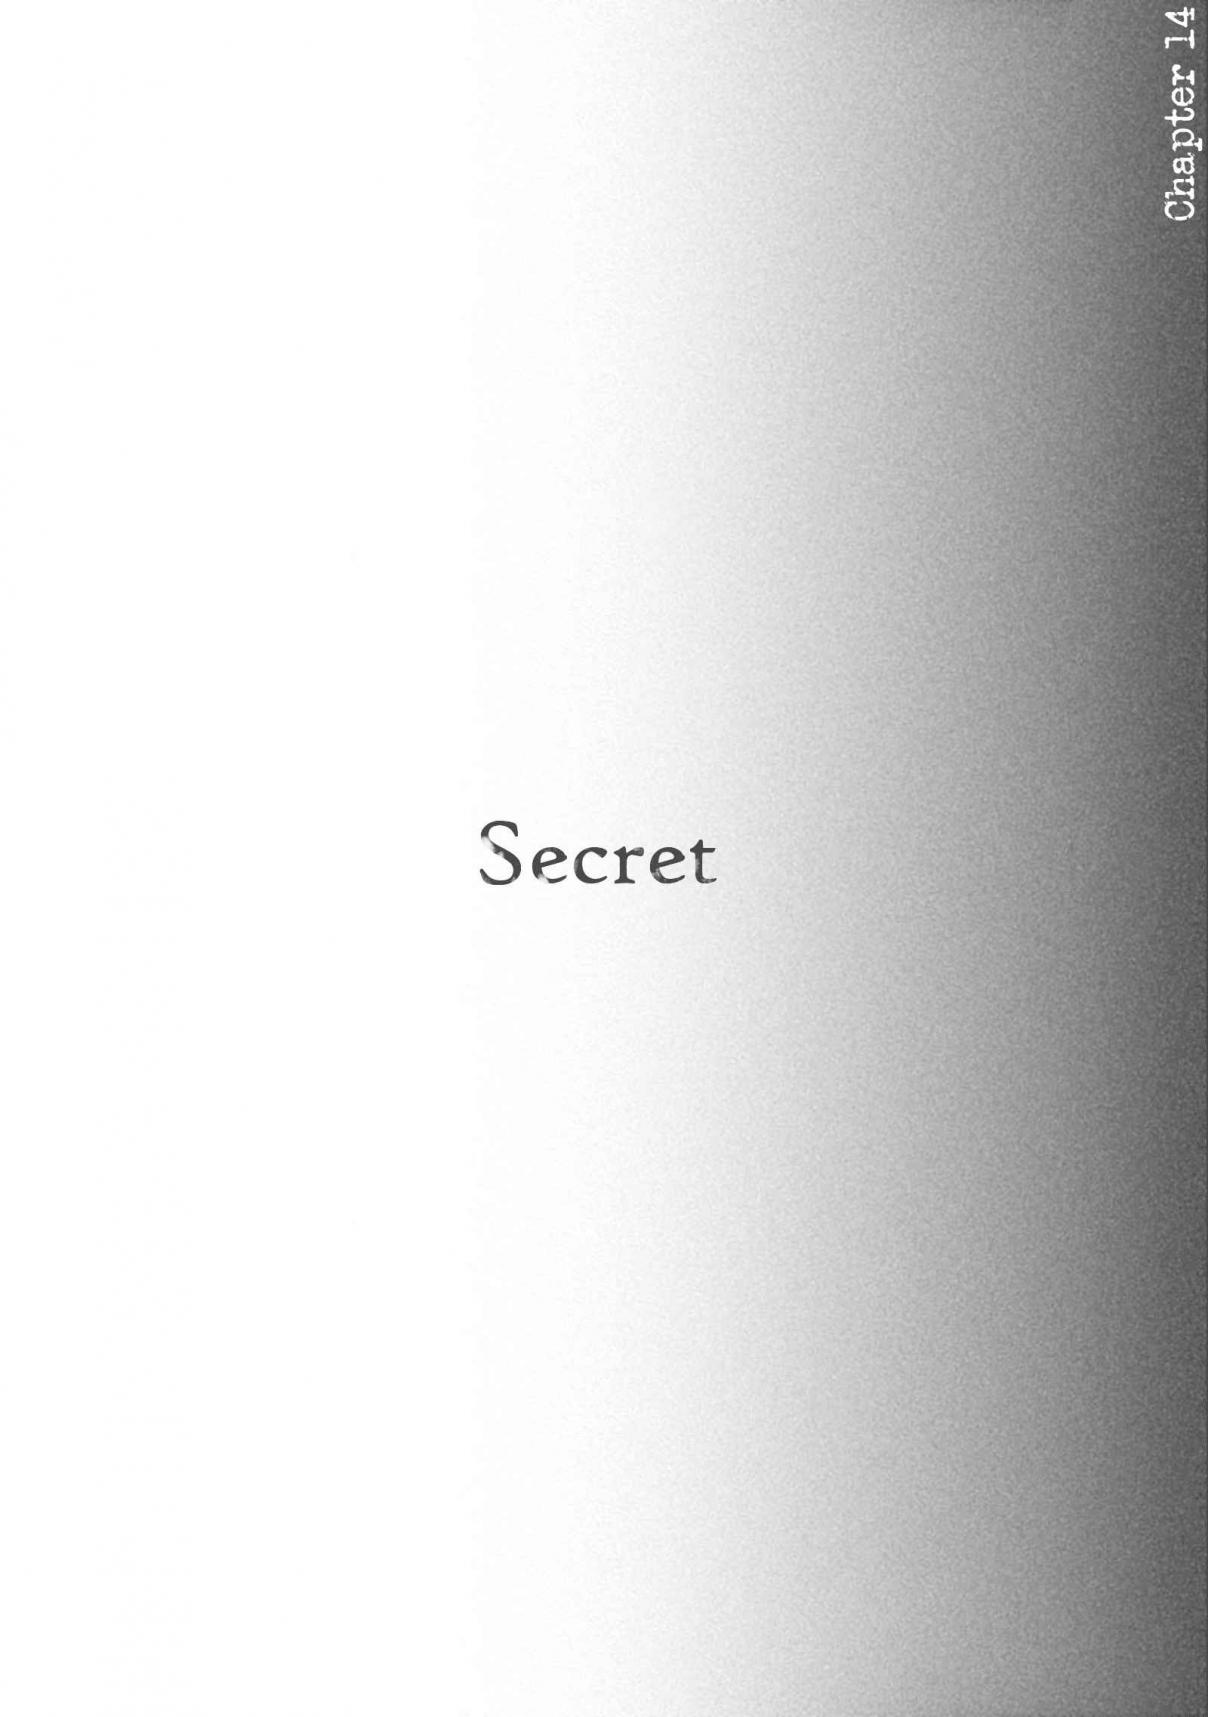 Hakka Shoujo Ch. 14 Secret